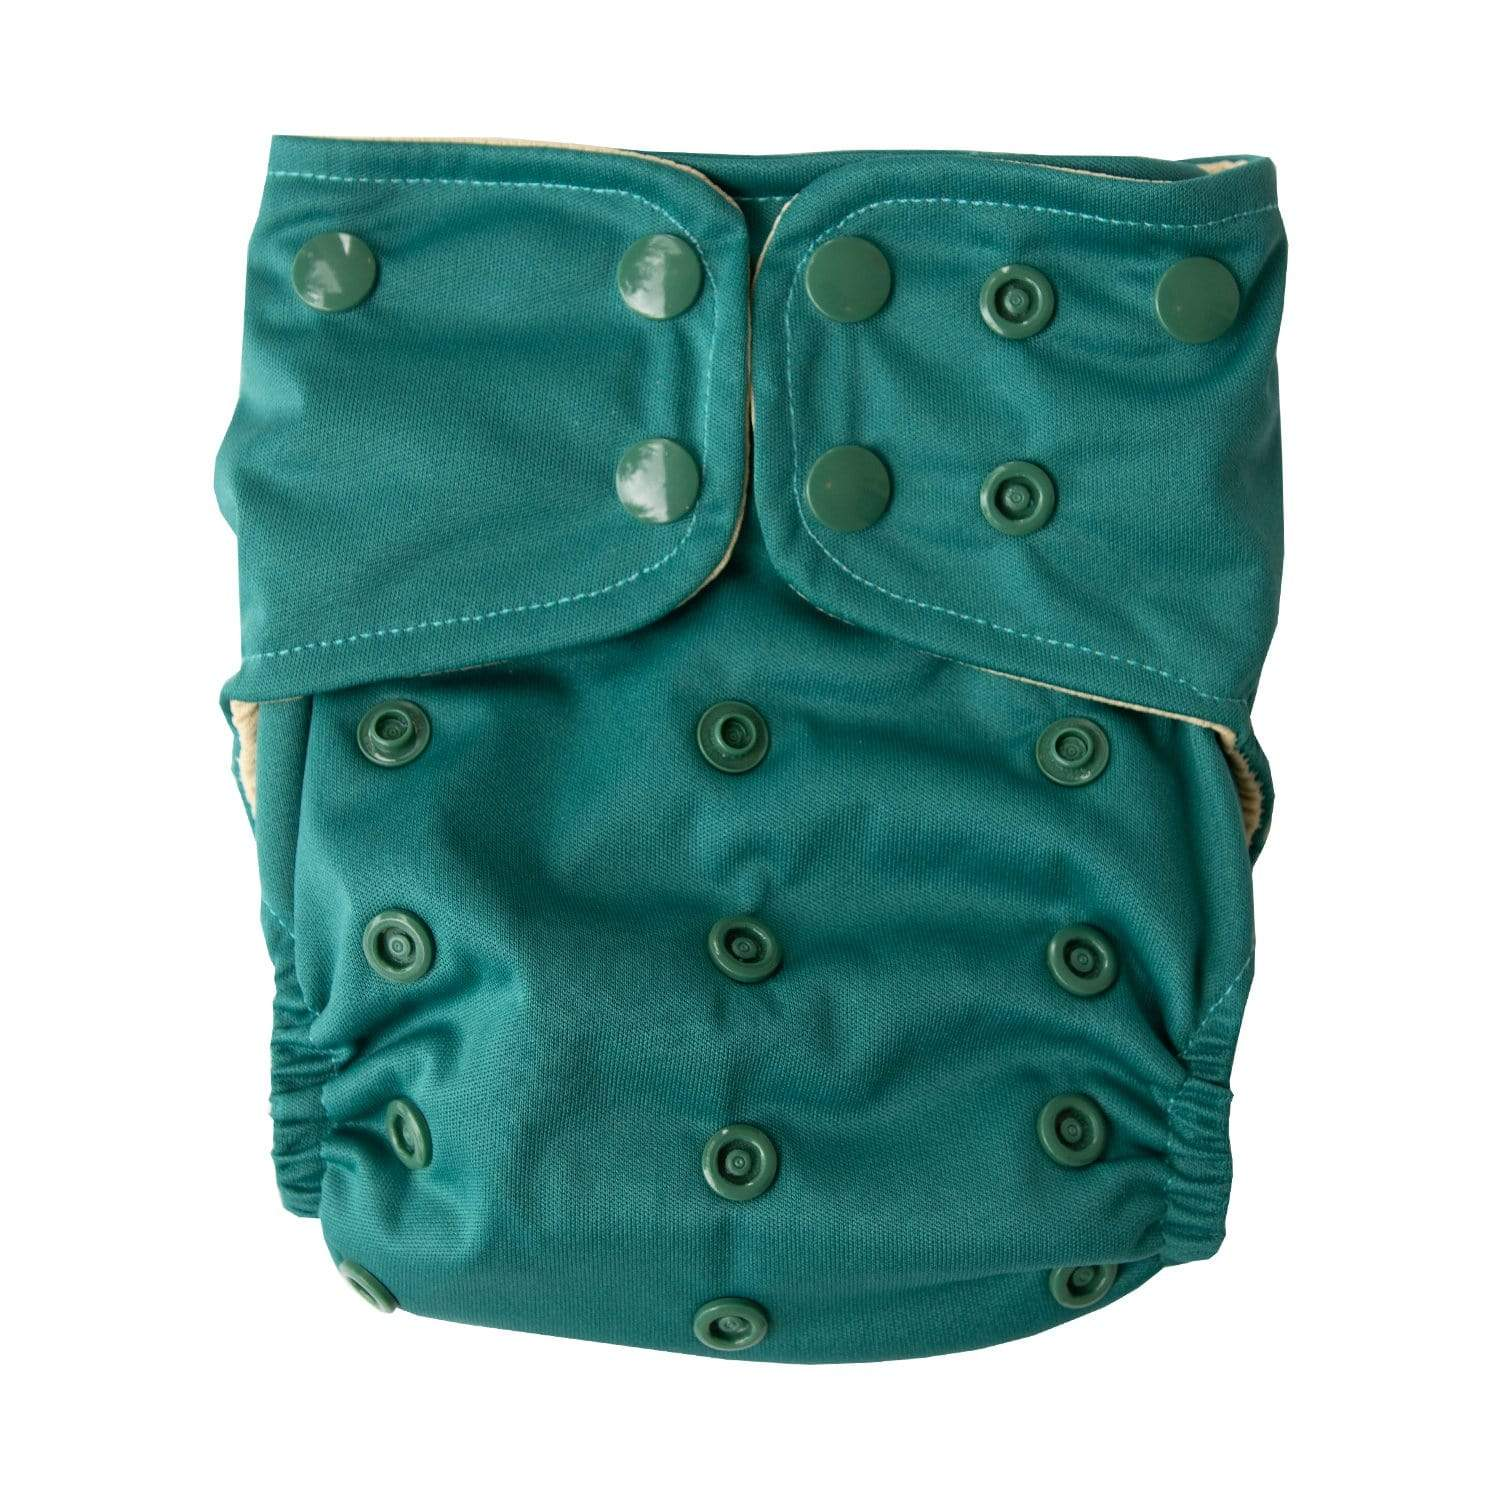 Lighthouse Kid's Company Signature All In One Diaper - Evergreen